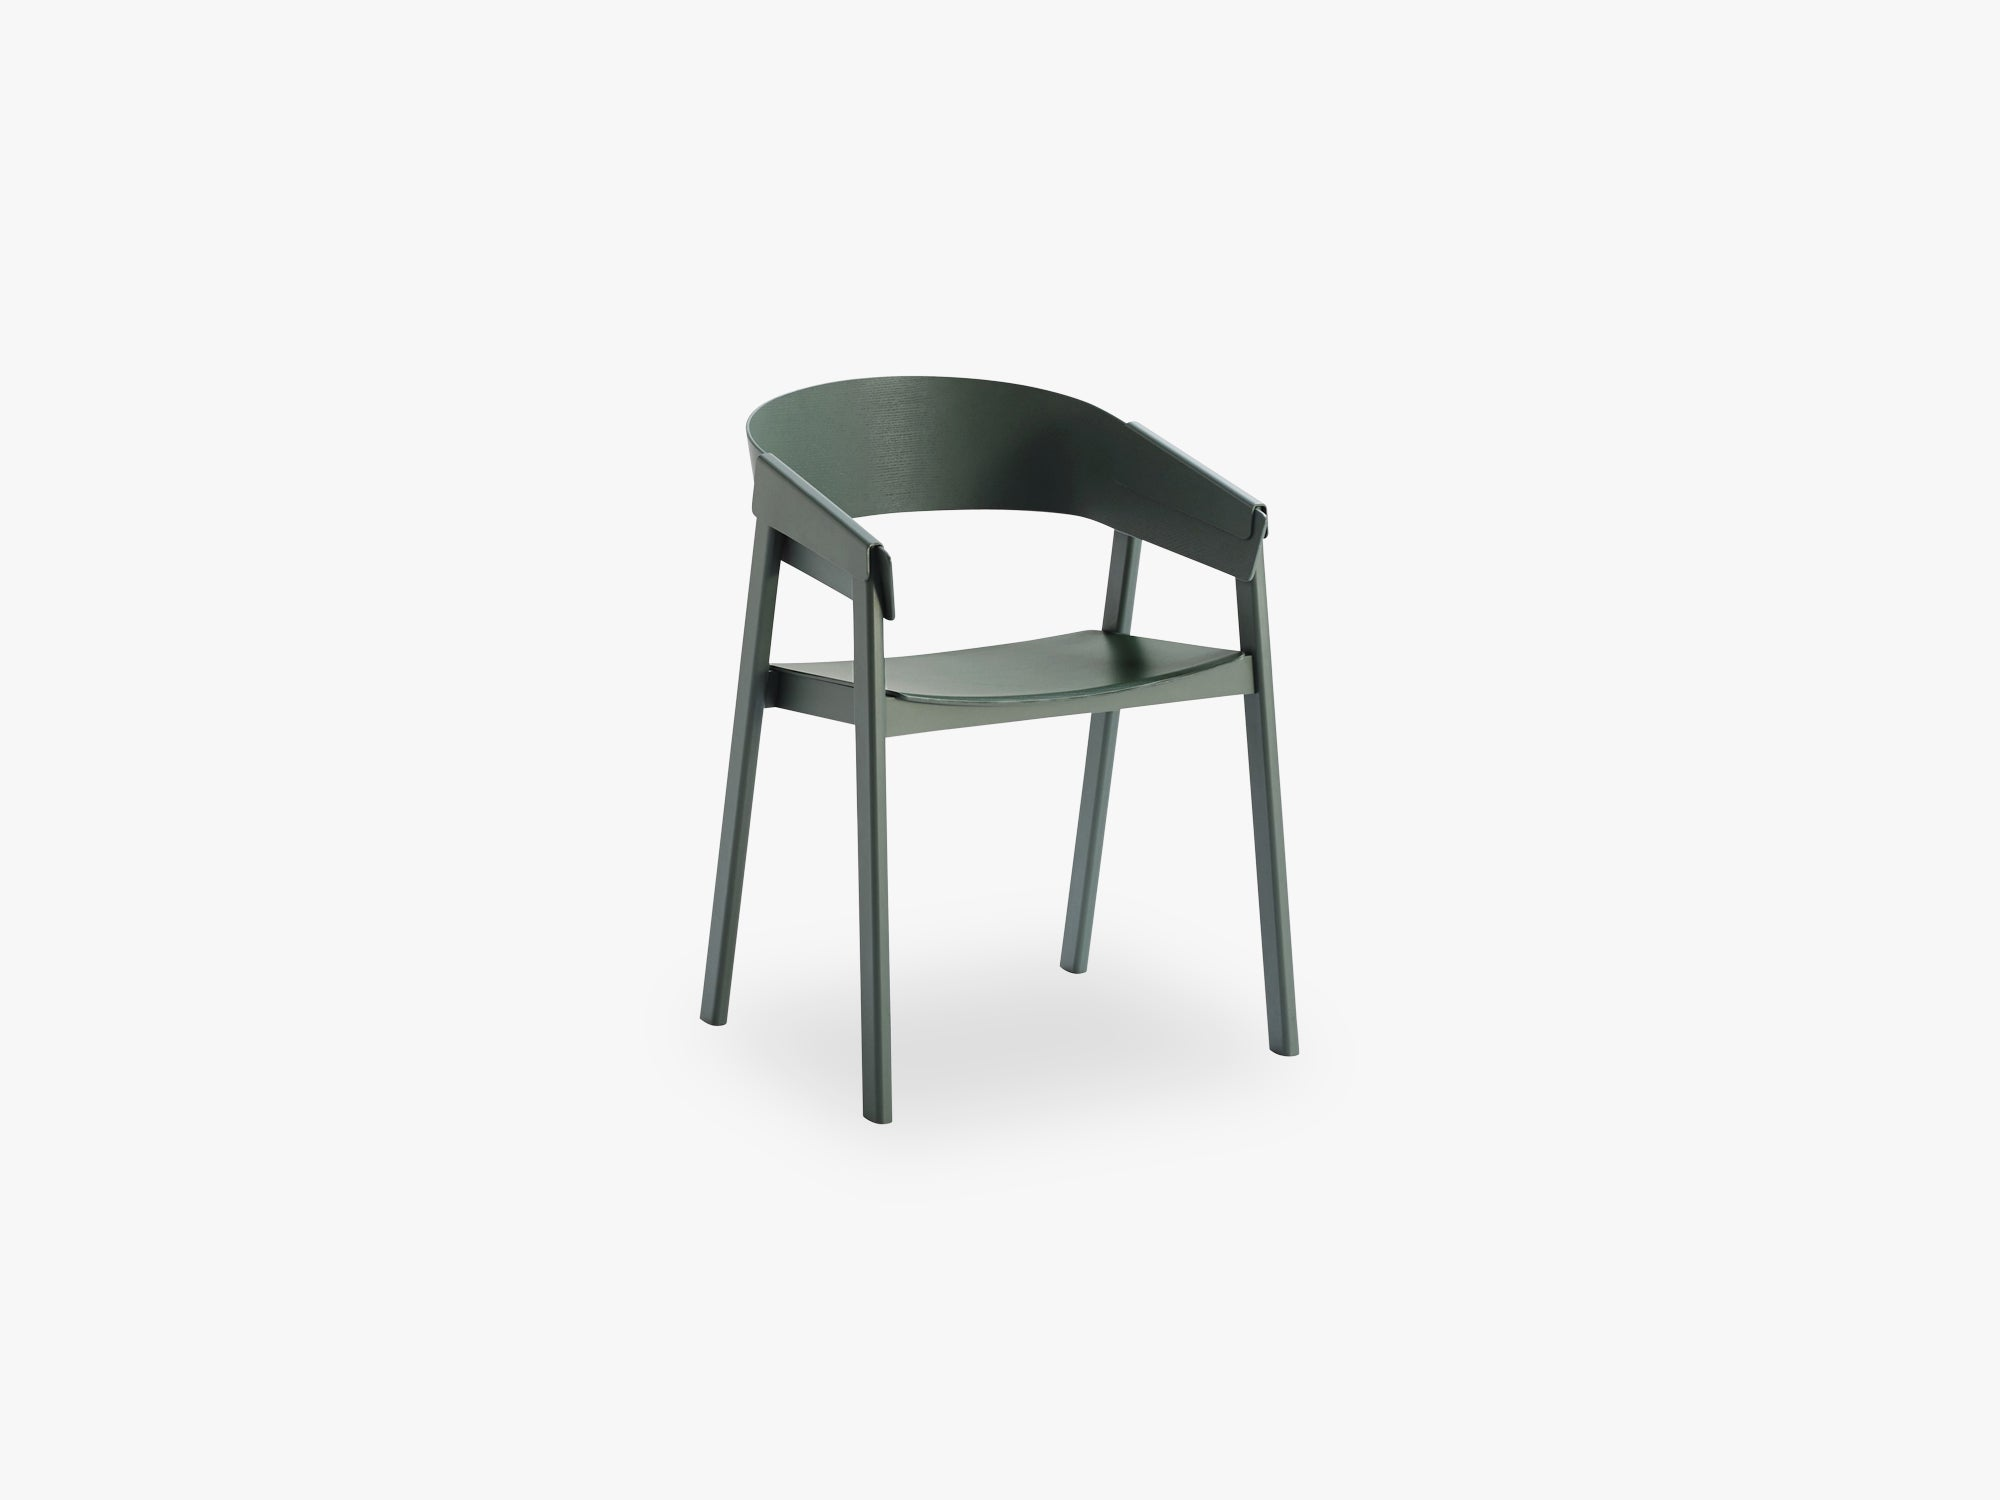 Cover Chair, Green fra Muuto